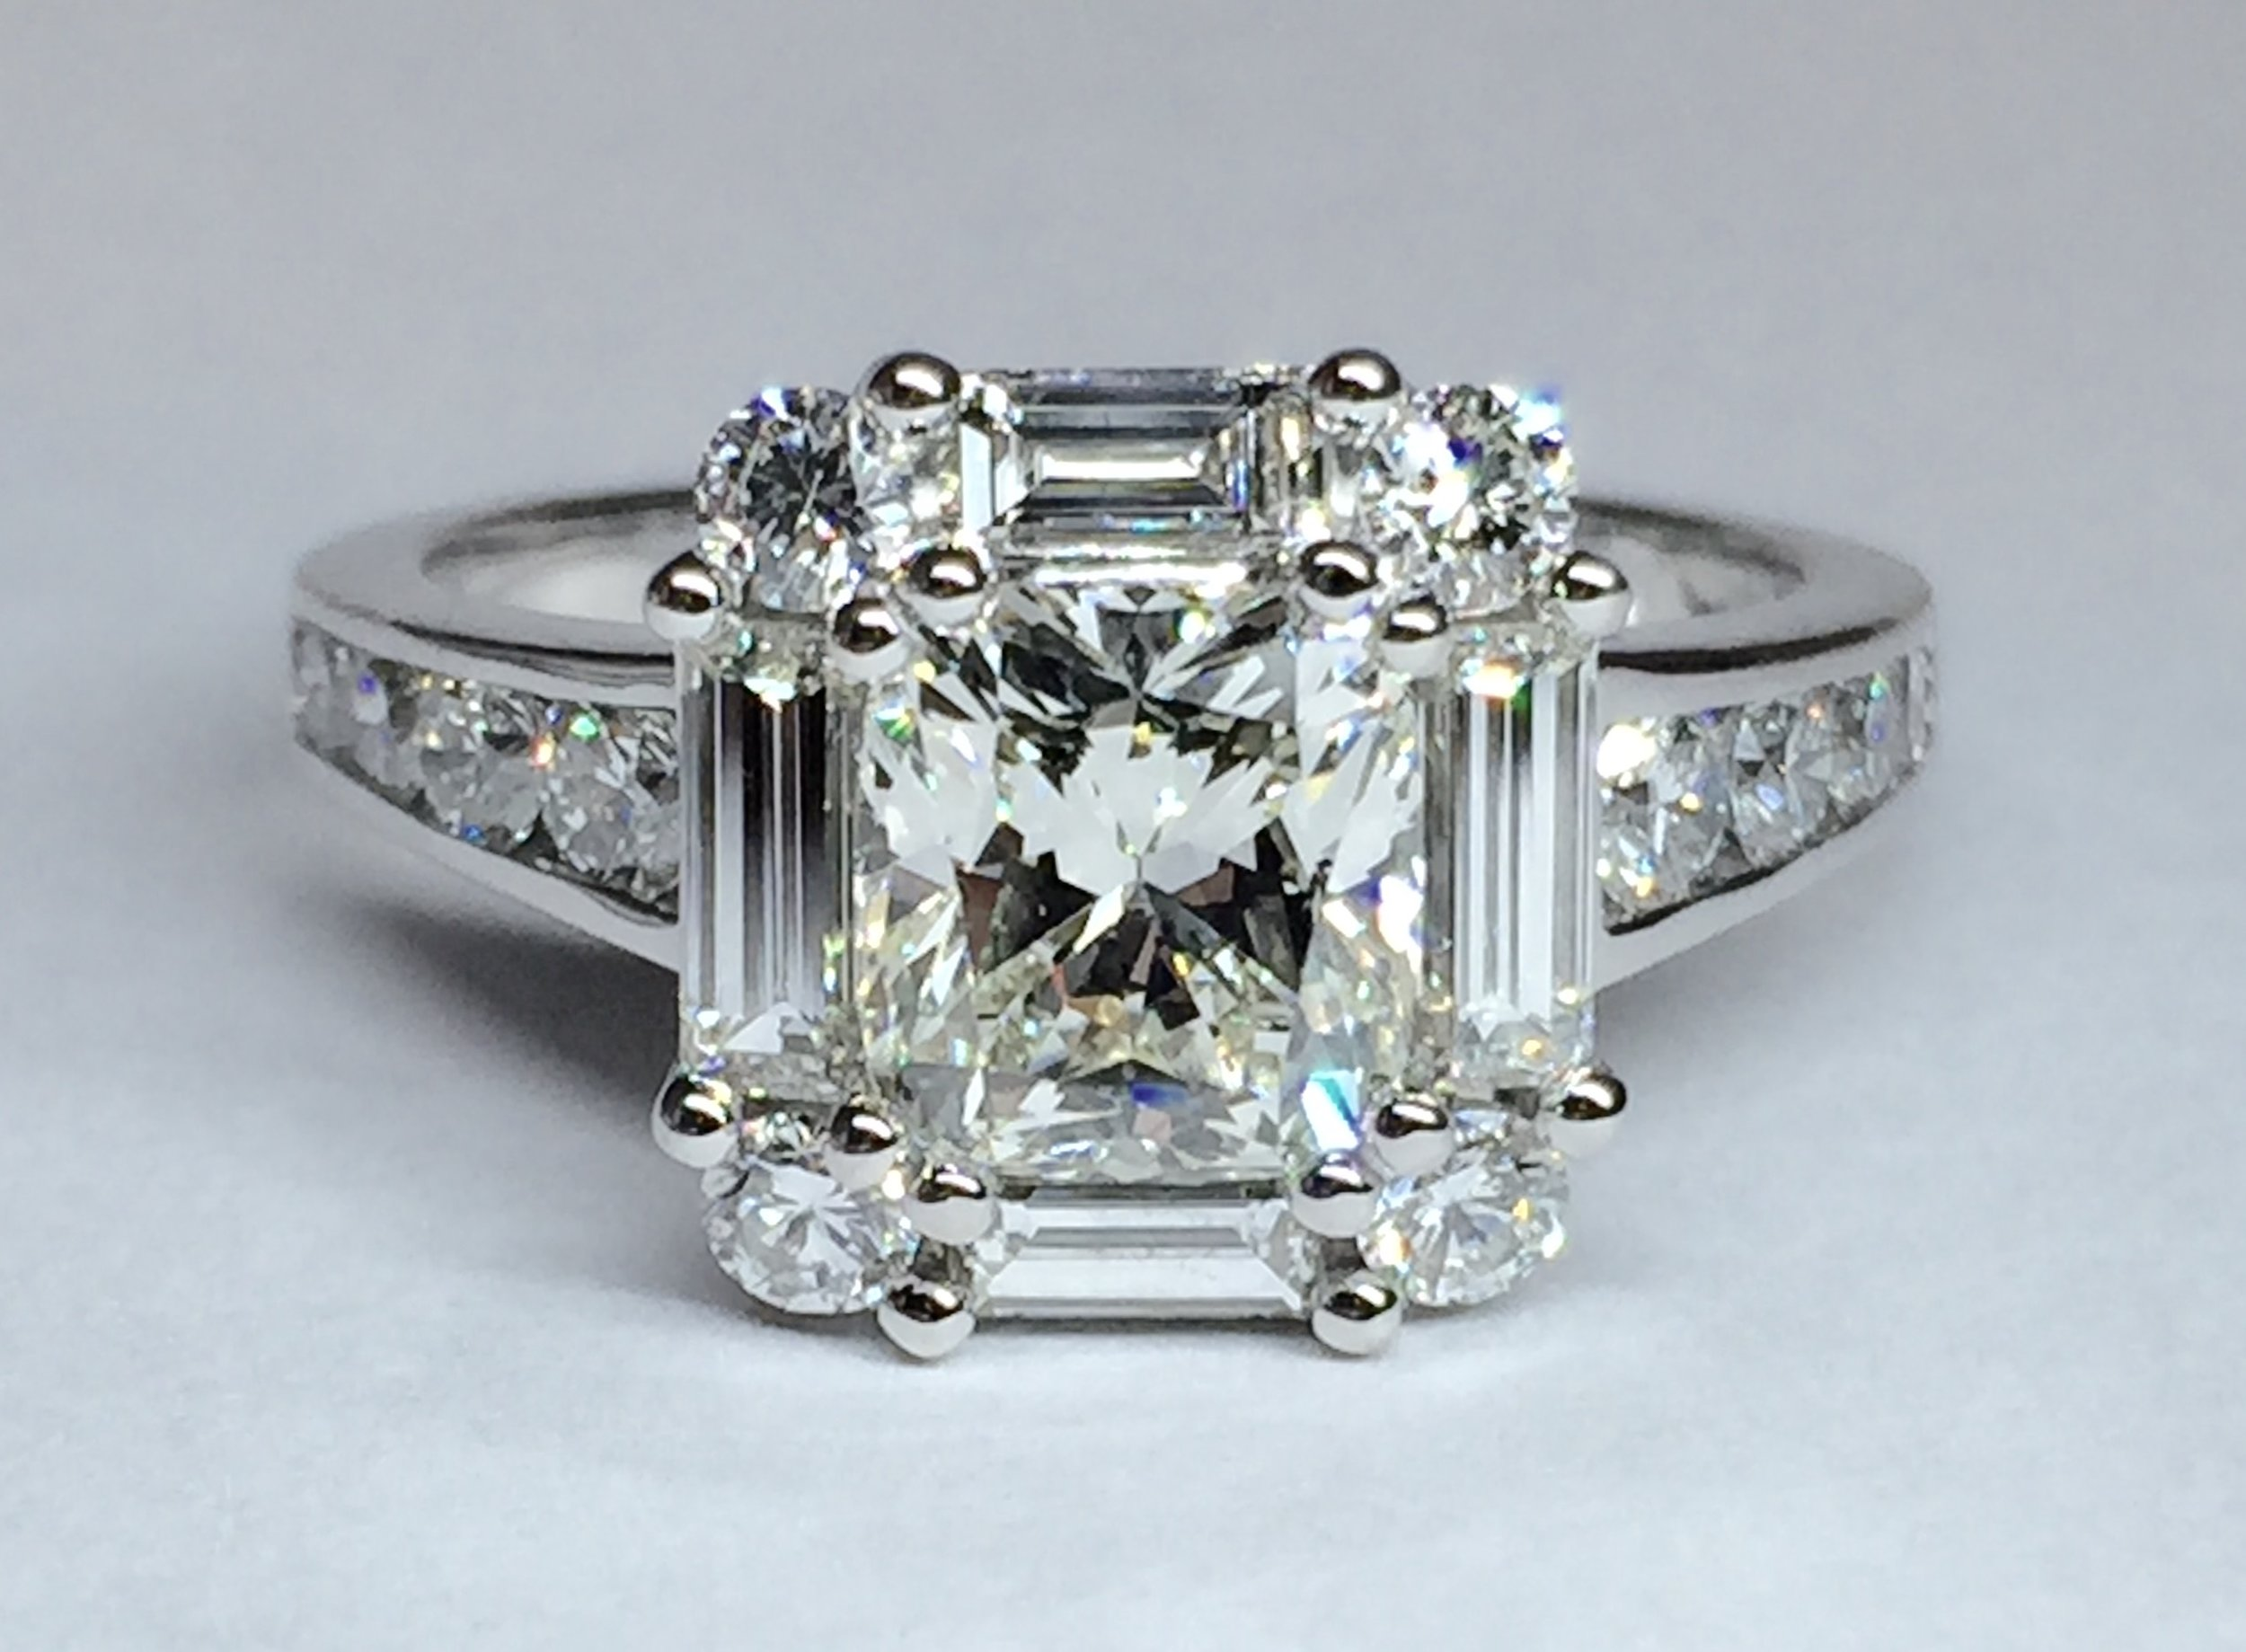 Copy of New mount made for customers centre cushion cut diamond. Made in Chichester, England.